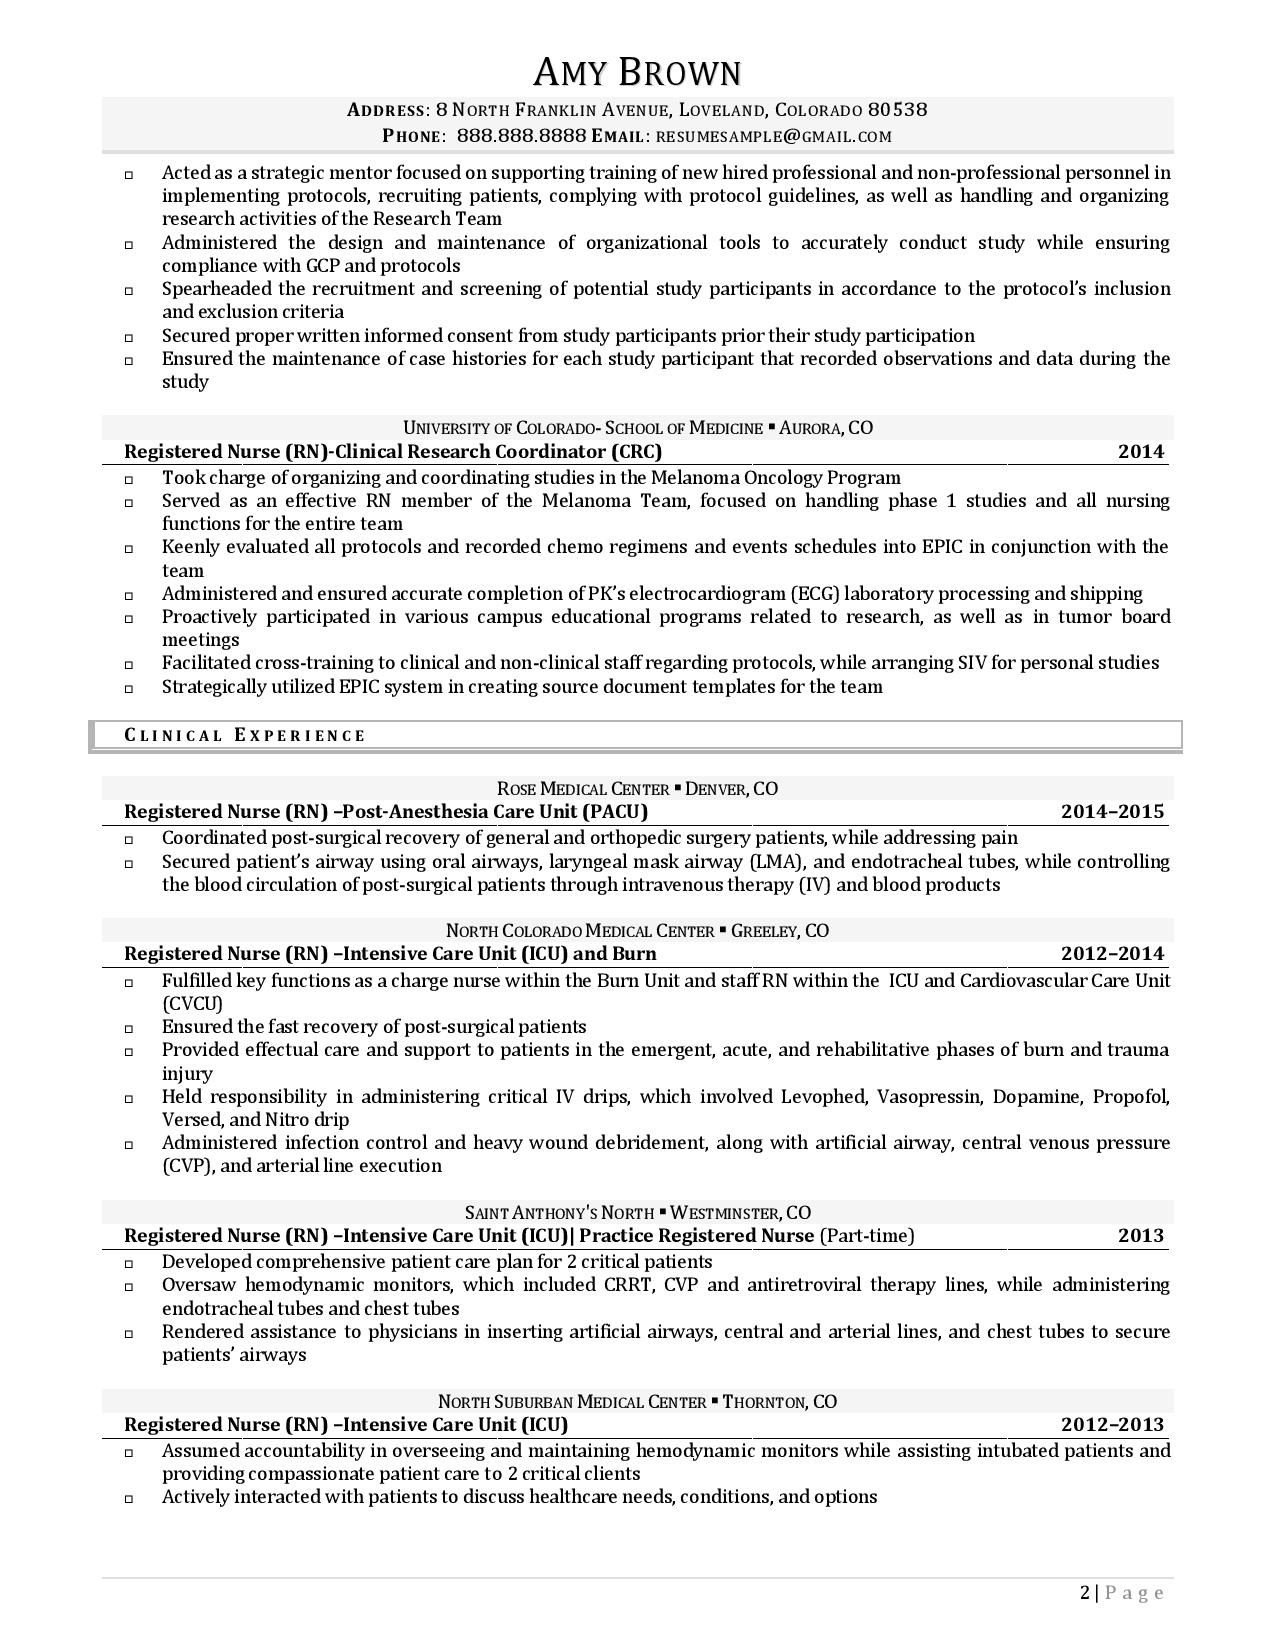 Page two of a sample resume from our list of research intern resume examples